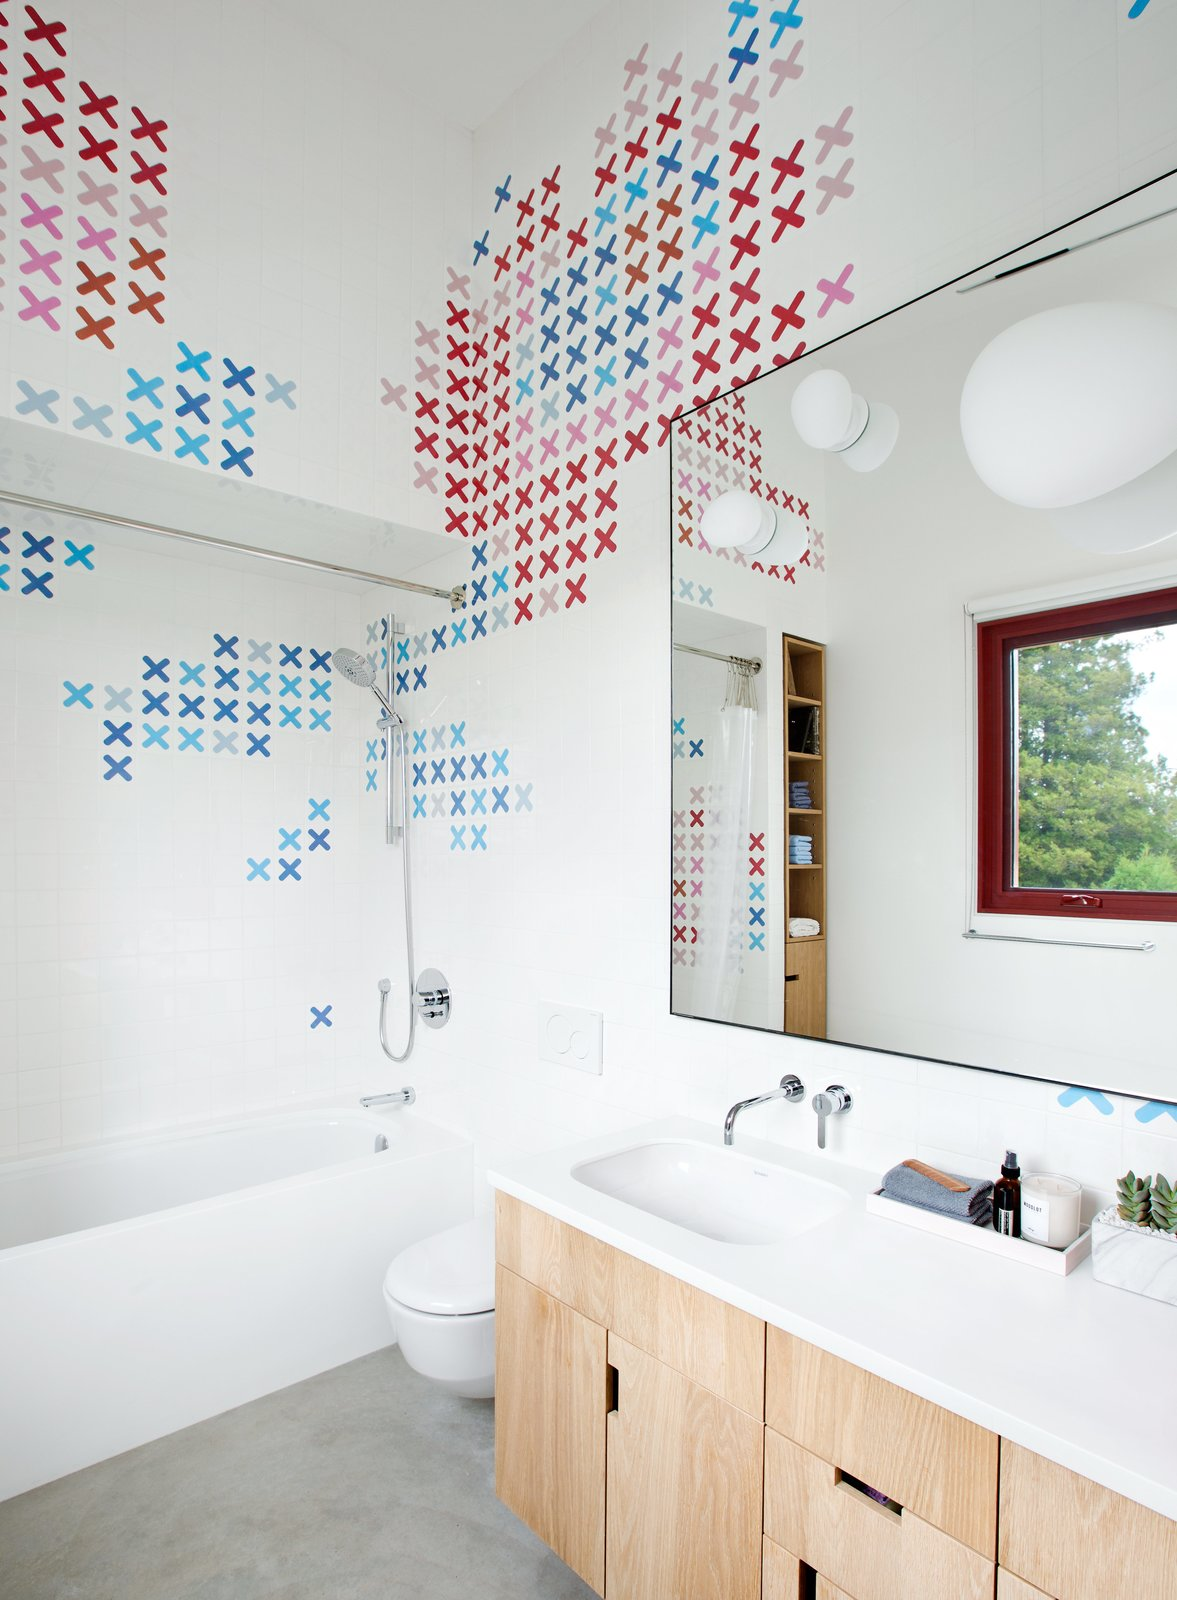 dwell bathroom ideas dwell one home three bathrooms each with an awesome way to use